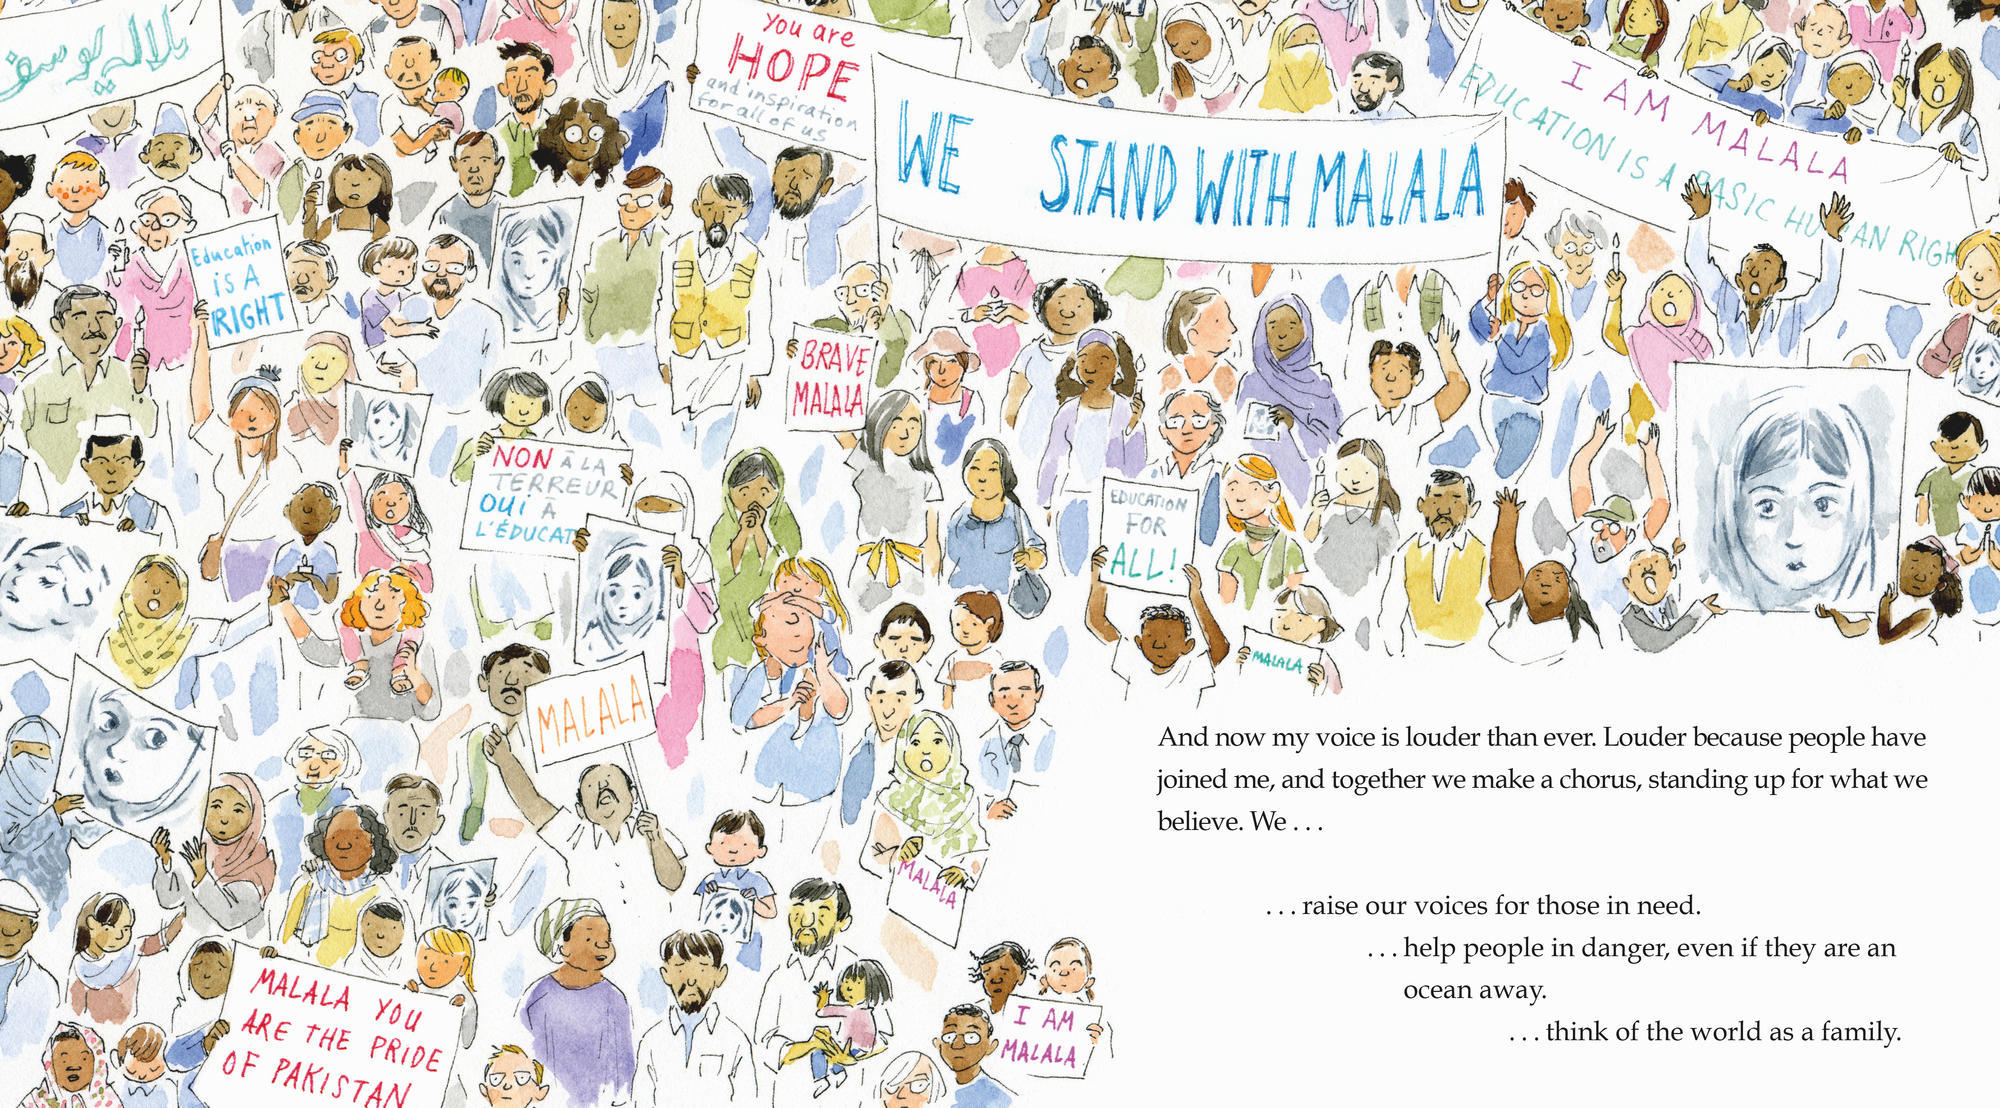 Malala's Magic Pencil Spread